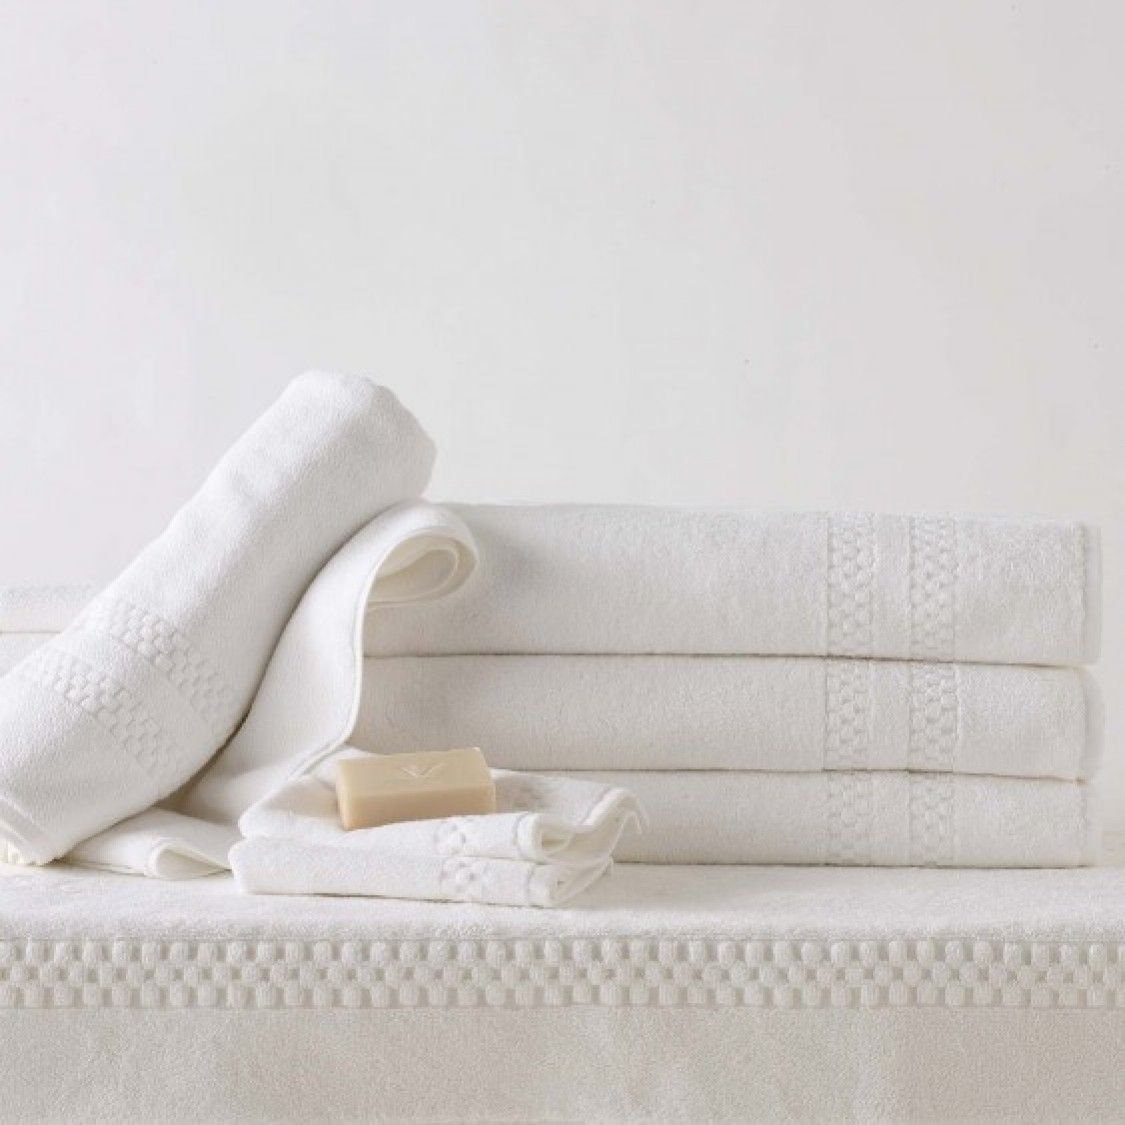 Frette Towel Set: Nothing Beats Basic, Soft White Towels (like These From